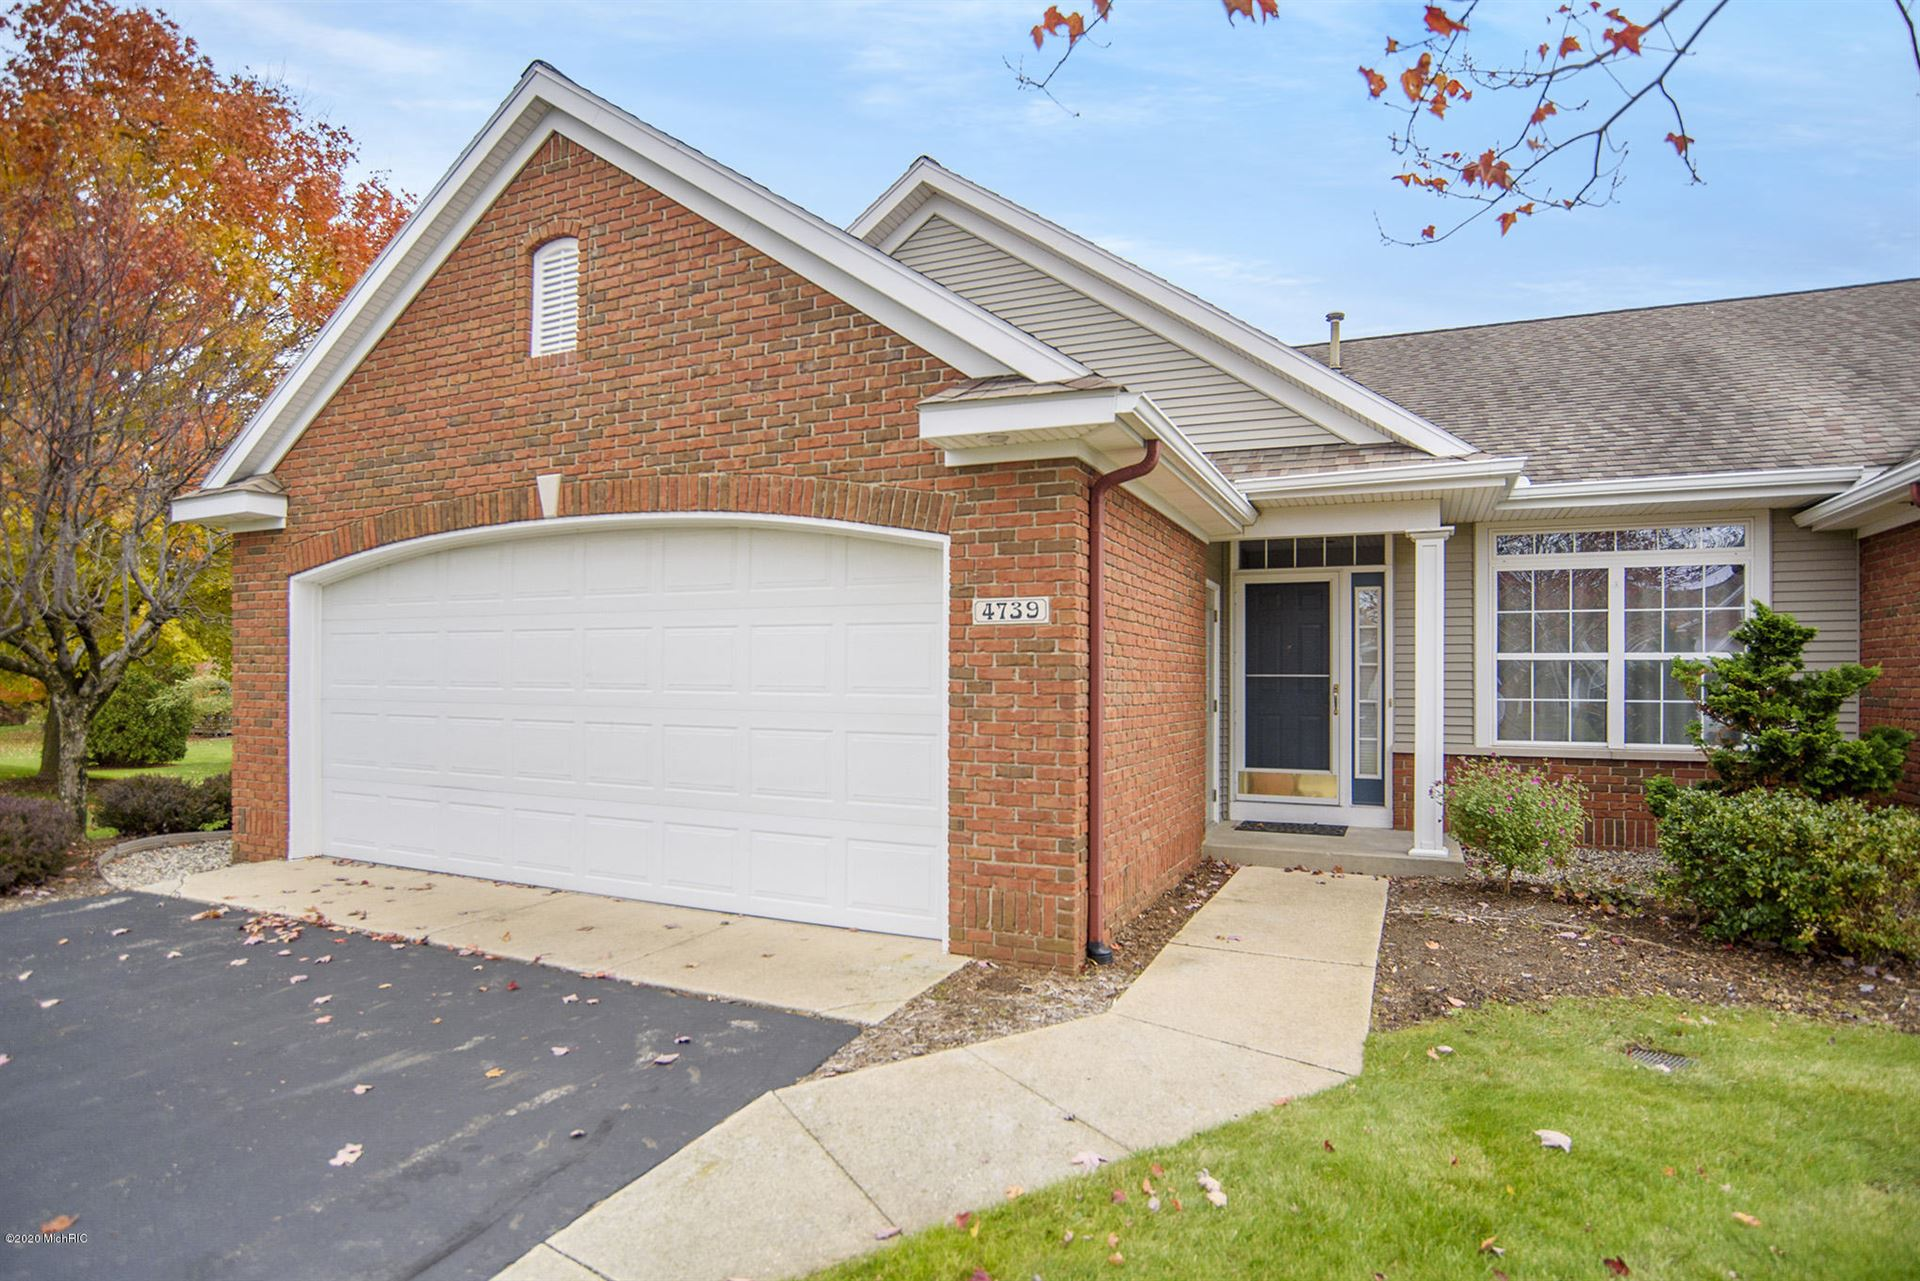 4739 Hedgestone Court, Holland, MI 49423 - #: 20045786